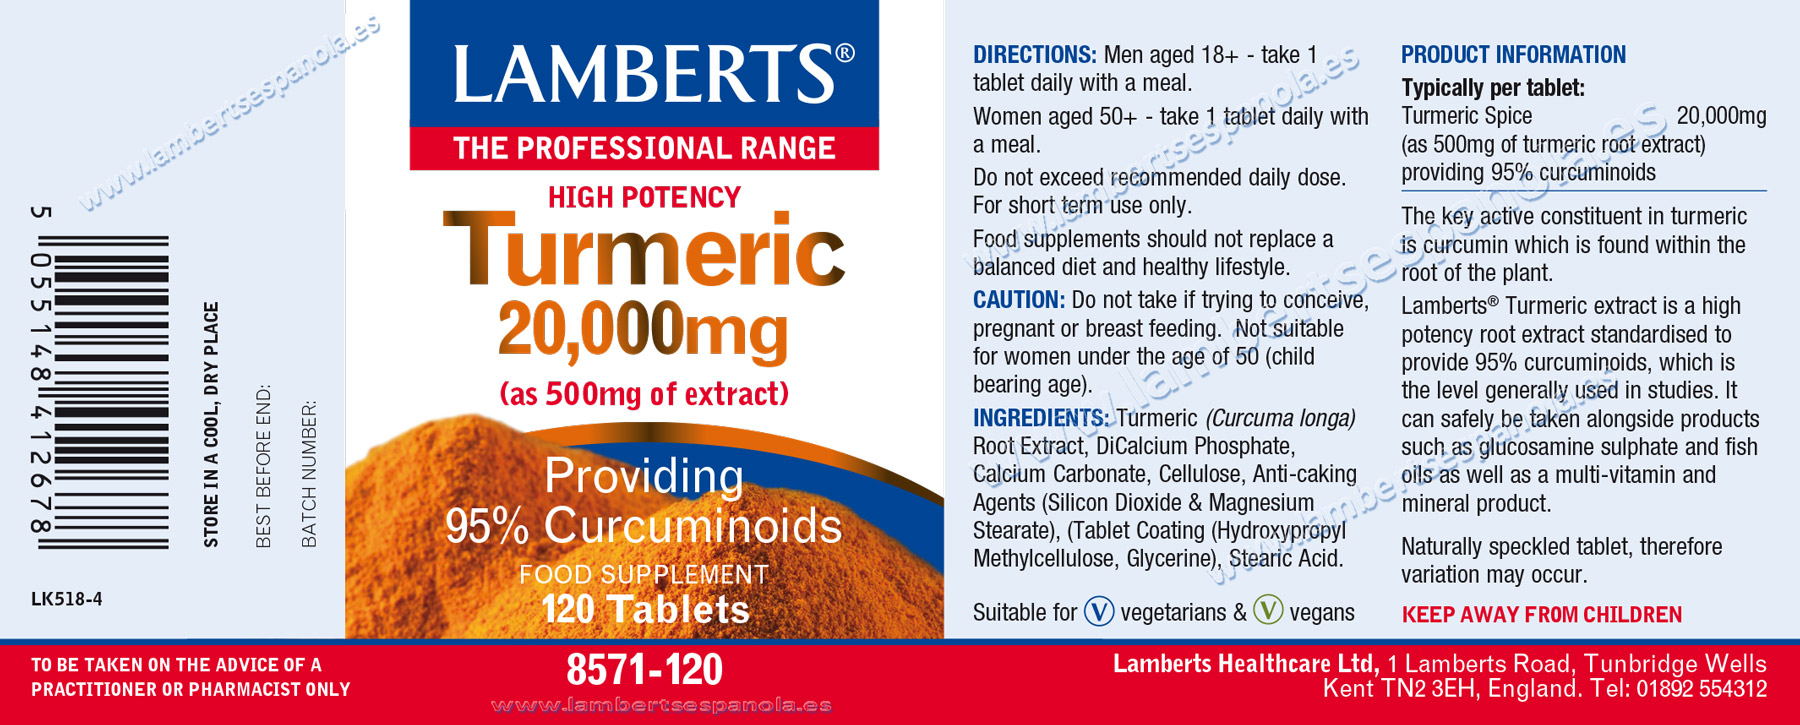 Turmeric 20.000 mg label properties